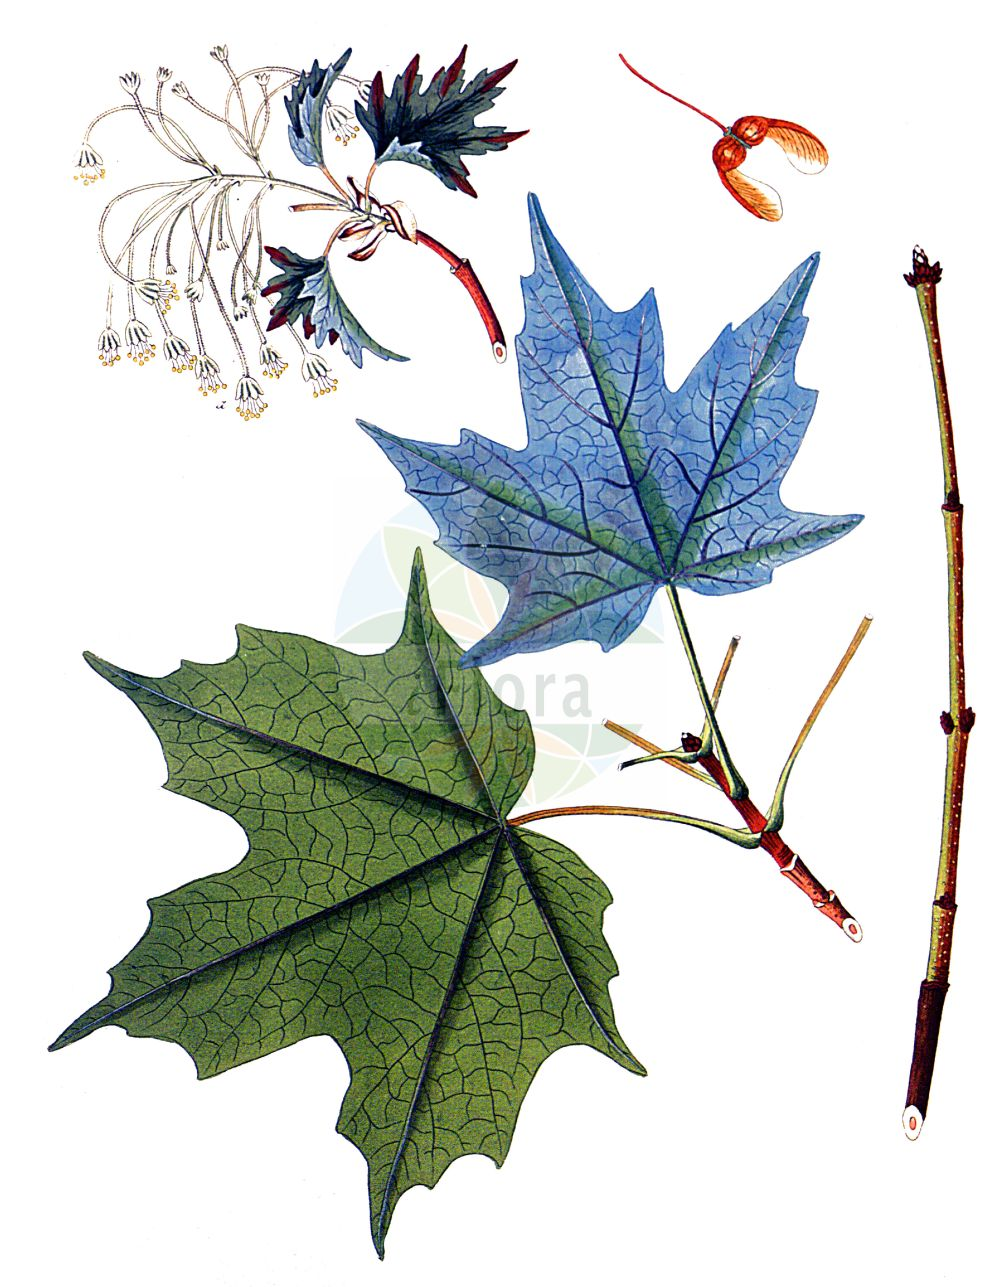 Historische Abbildung von Acer saccharinum (Silber-Ahorn - Silver Maple). Das Bild zeigt Blatt, Bluete, Frucht und Same. ---- Historical Drawing of Acer saccharinum (Silber-Ahorn - Silver Maple).The image is showing leaf, flower, fruit and seed.(Acer saccharinum,Silber-Ahorn,Silver Maple,Acer dasycarpum,Acer saccharinum,Silber-Ahorn,Silver Maple,Creek Maple,River Maple,Silverleaf Maple,Soft Maple,Swamp Maple,Water Maple,White Maple,Sugar Maple,Acer,Ahorn,Maple,Sapindaceae,Seifenbaumgewaechse,Soapberry family,Blatt,Bluete,Frucht,Same,leaf,flower,fruit,seed,Krauss (1802f))